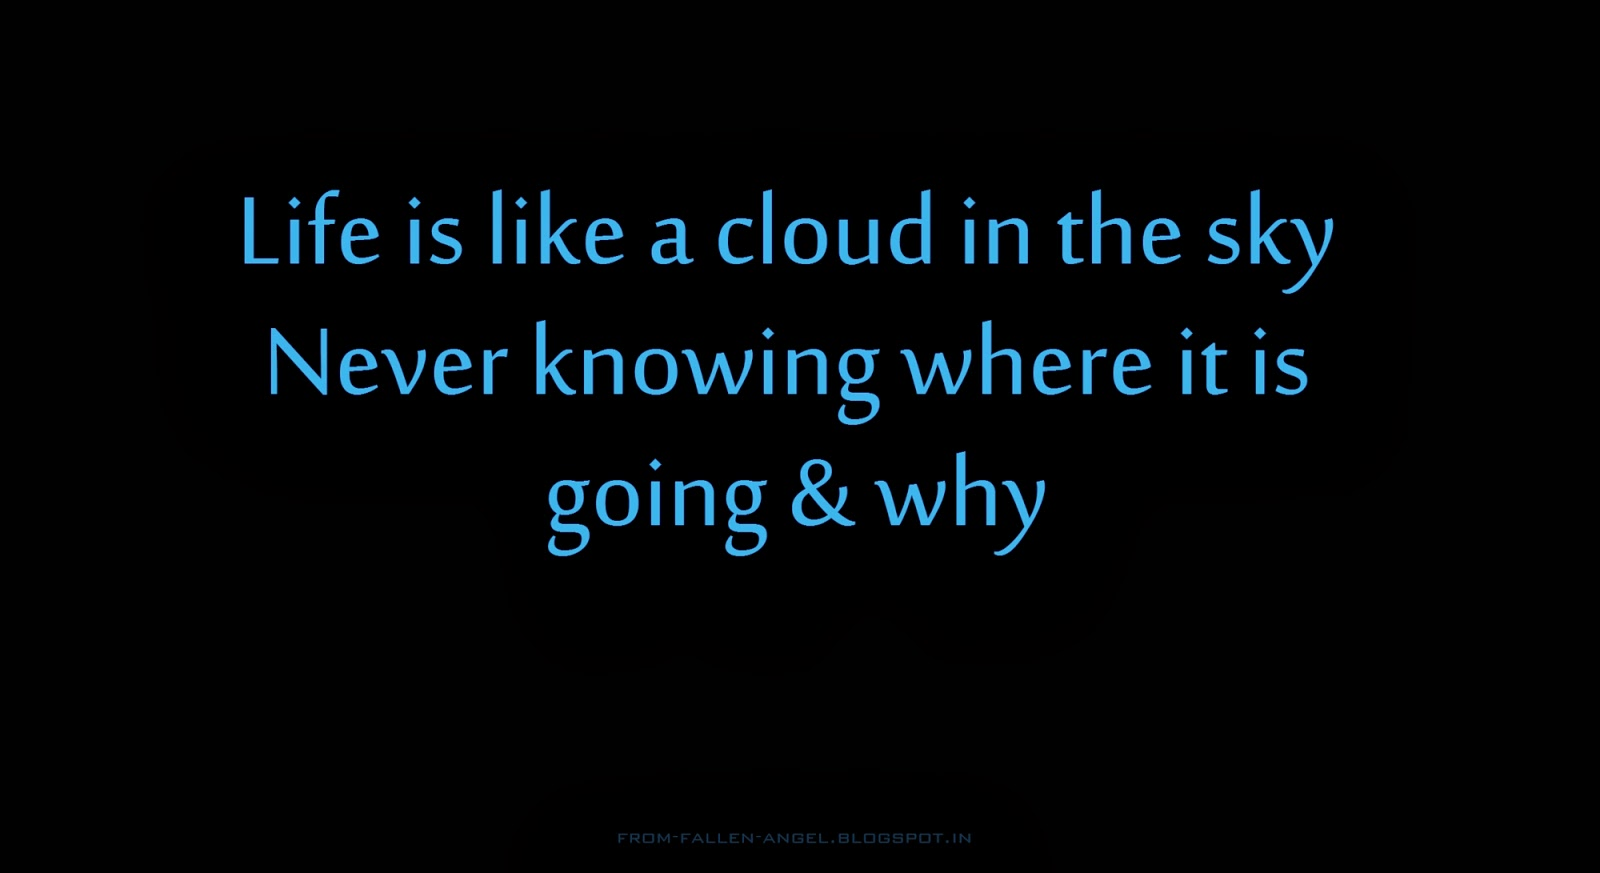 Life is like a cloud in the sky Never knowing where it is going and why